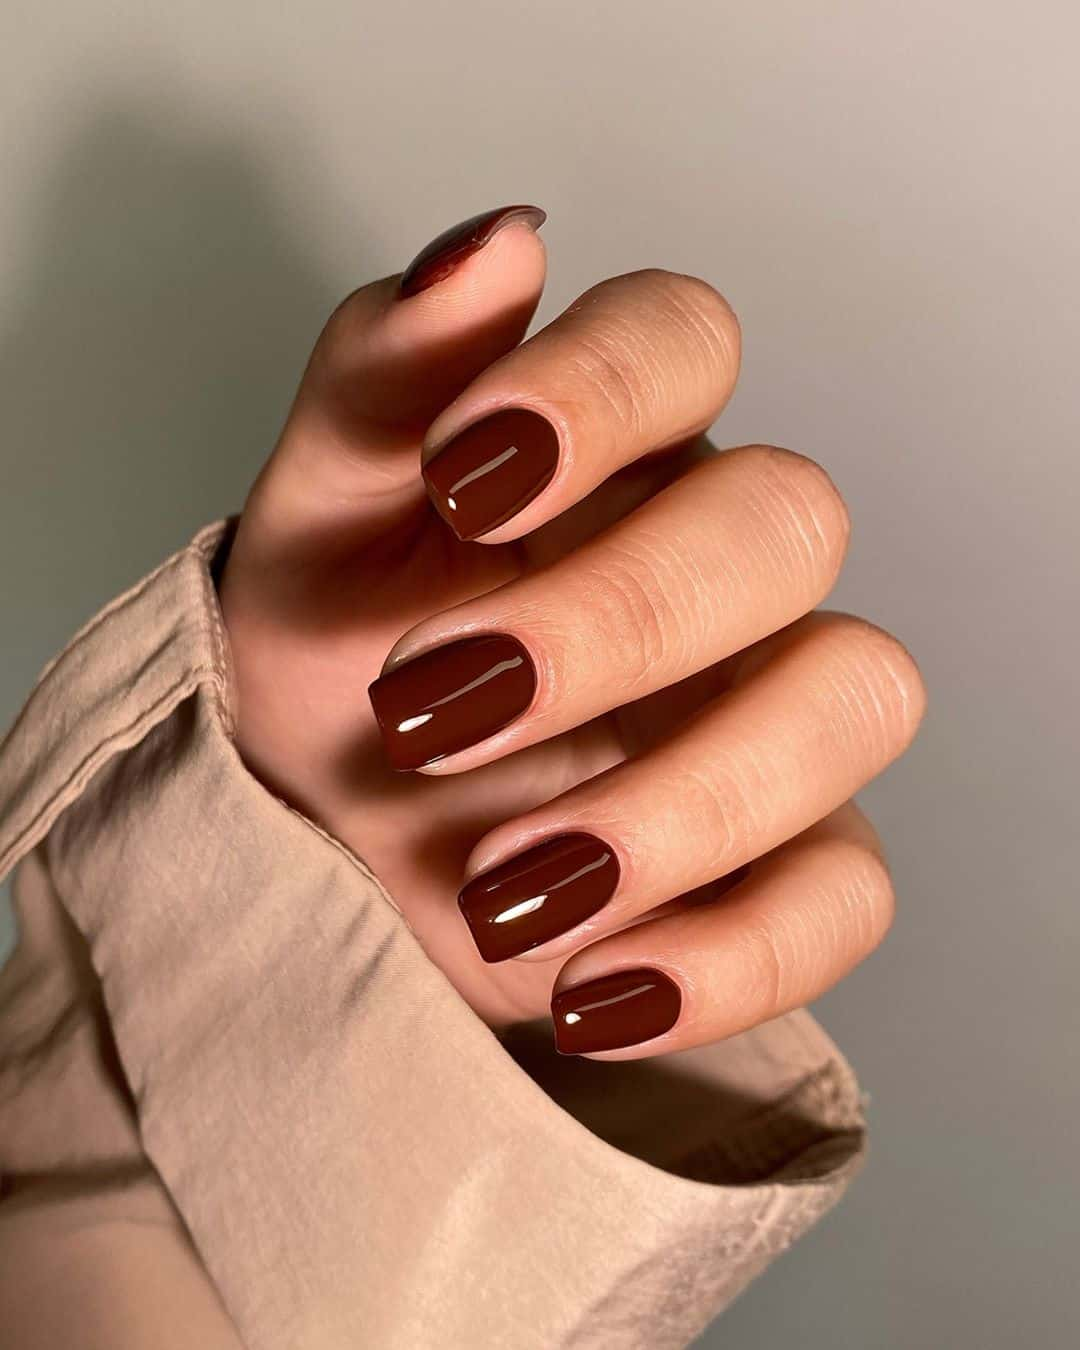 15 Top Spring Nail Colors for 2021